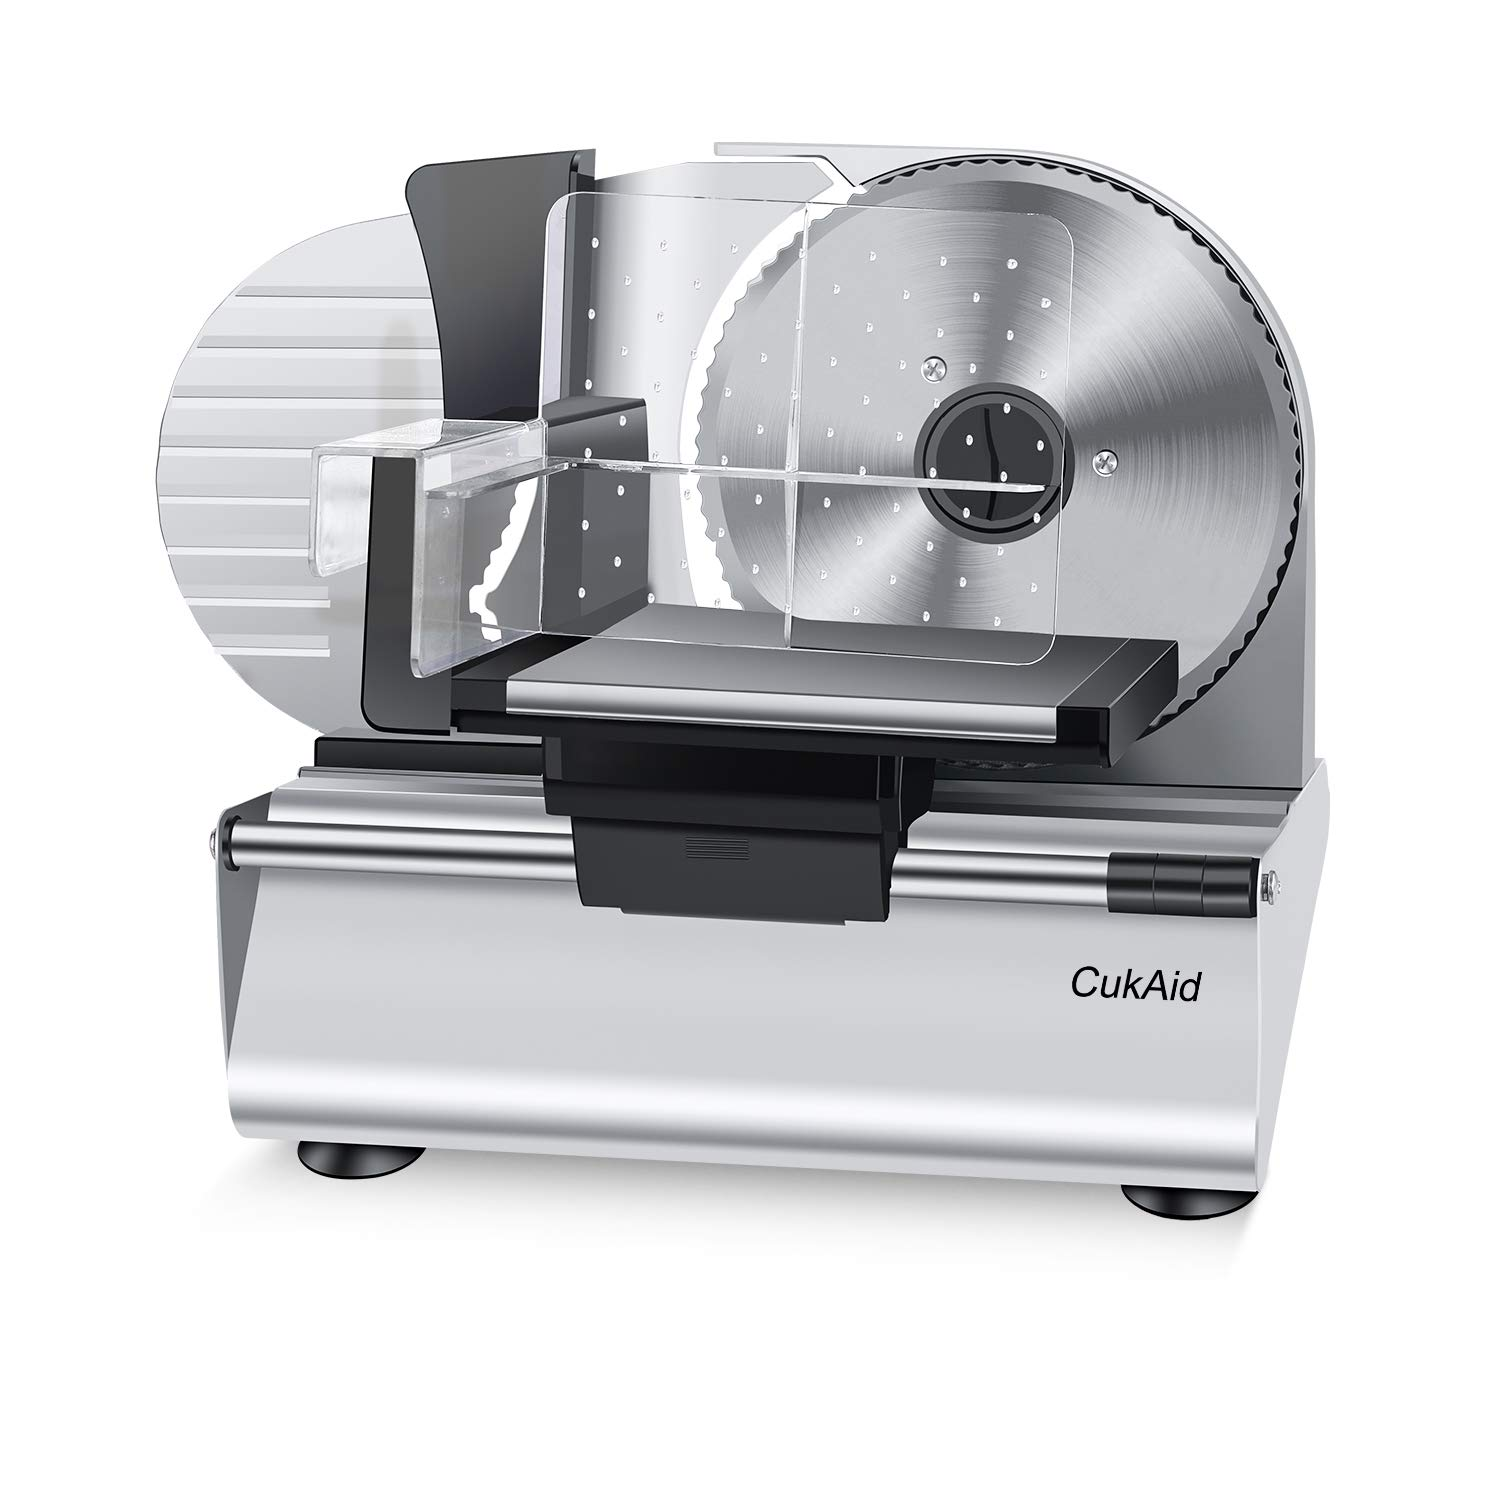 CukAid Electric Meat Slicer Machine, Deli Cheese Bread Food Slicer, Dishwasher Safe, Removable Stainless Steel Blade & Food Carriage and Pusher, 7/8 Inch Adjustable Thickness, 180W, Commercial & Home Use by CukAid (Image #1)